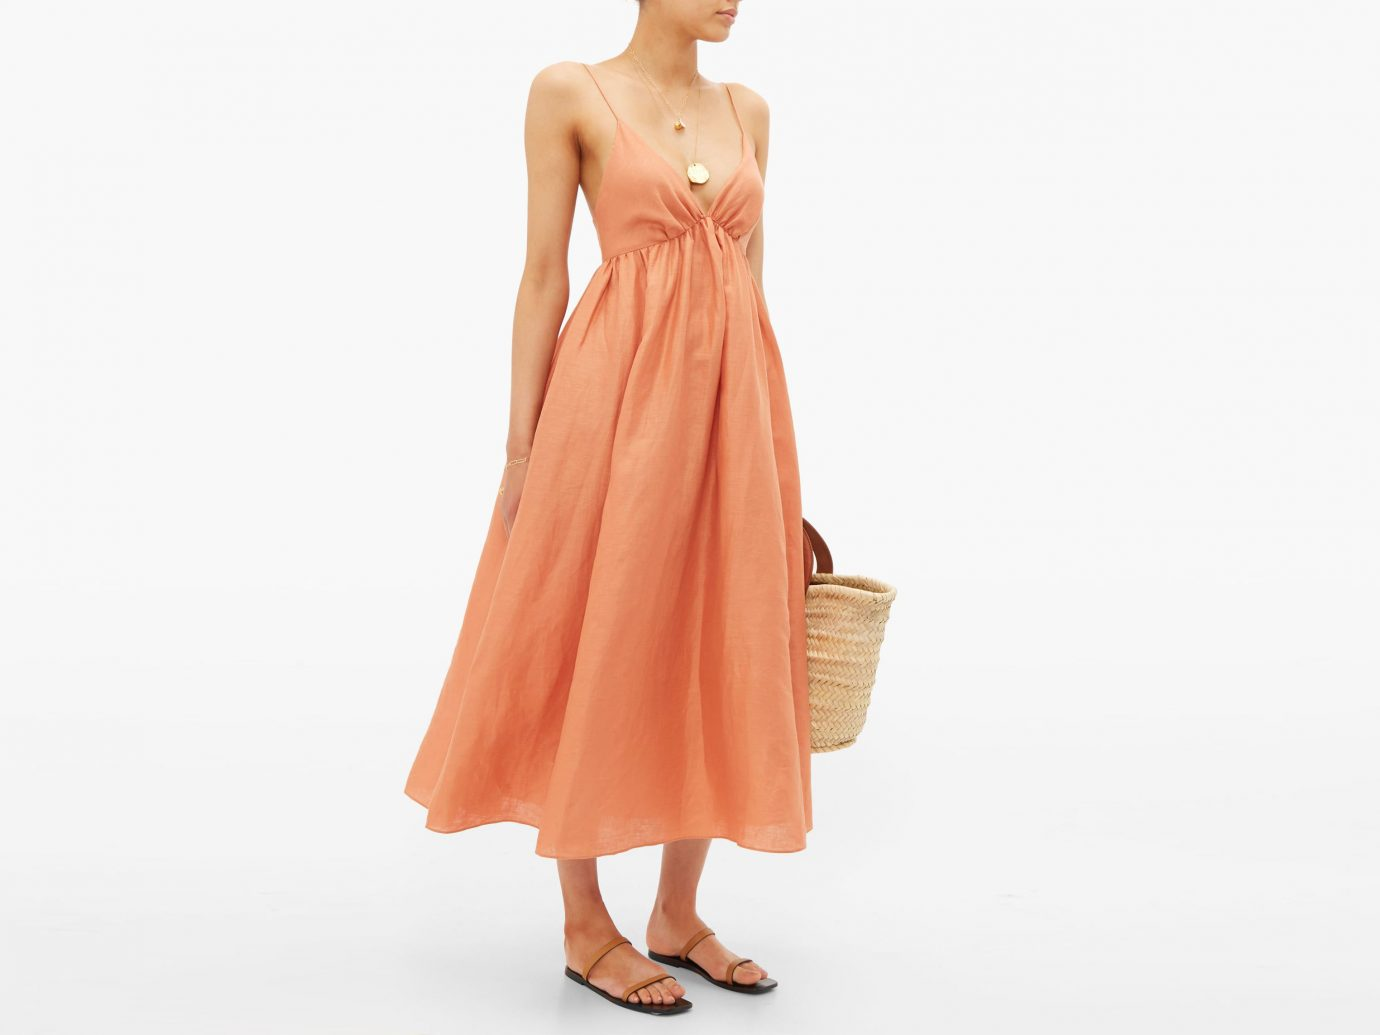 Loup Charmant Adelaide linen maxi dress